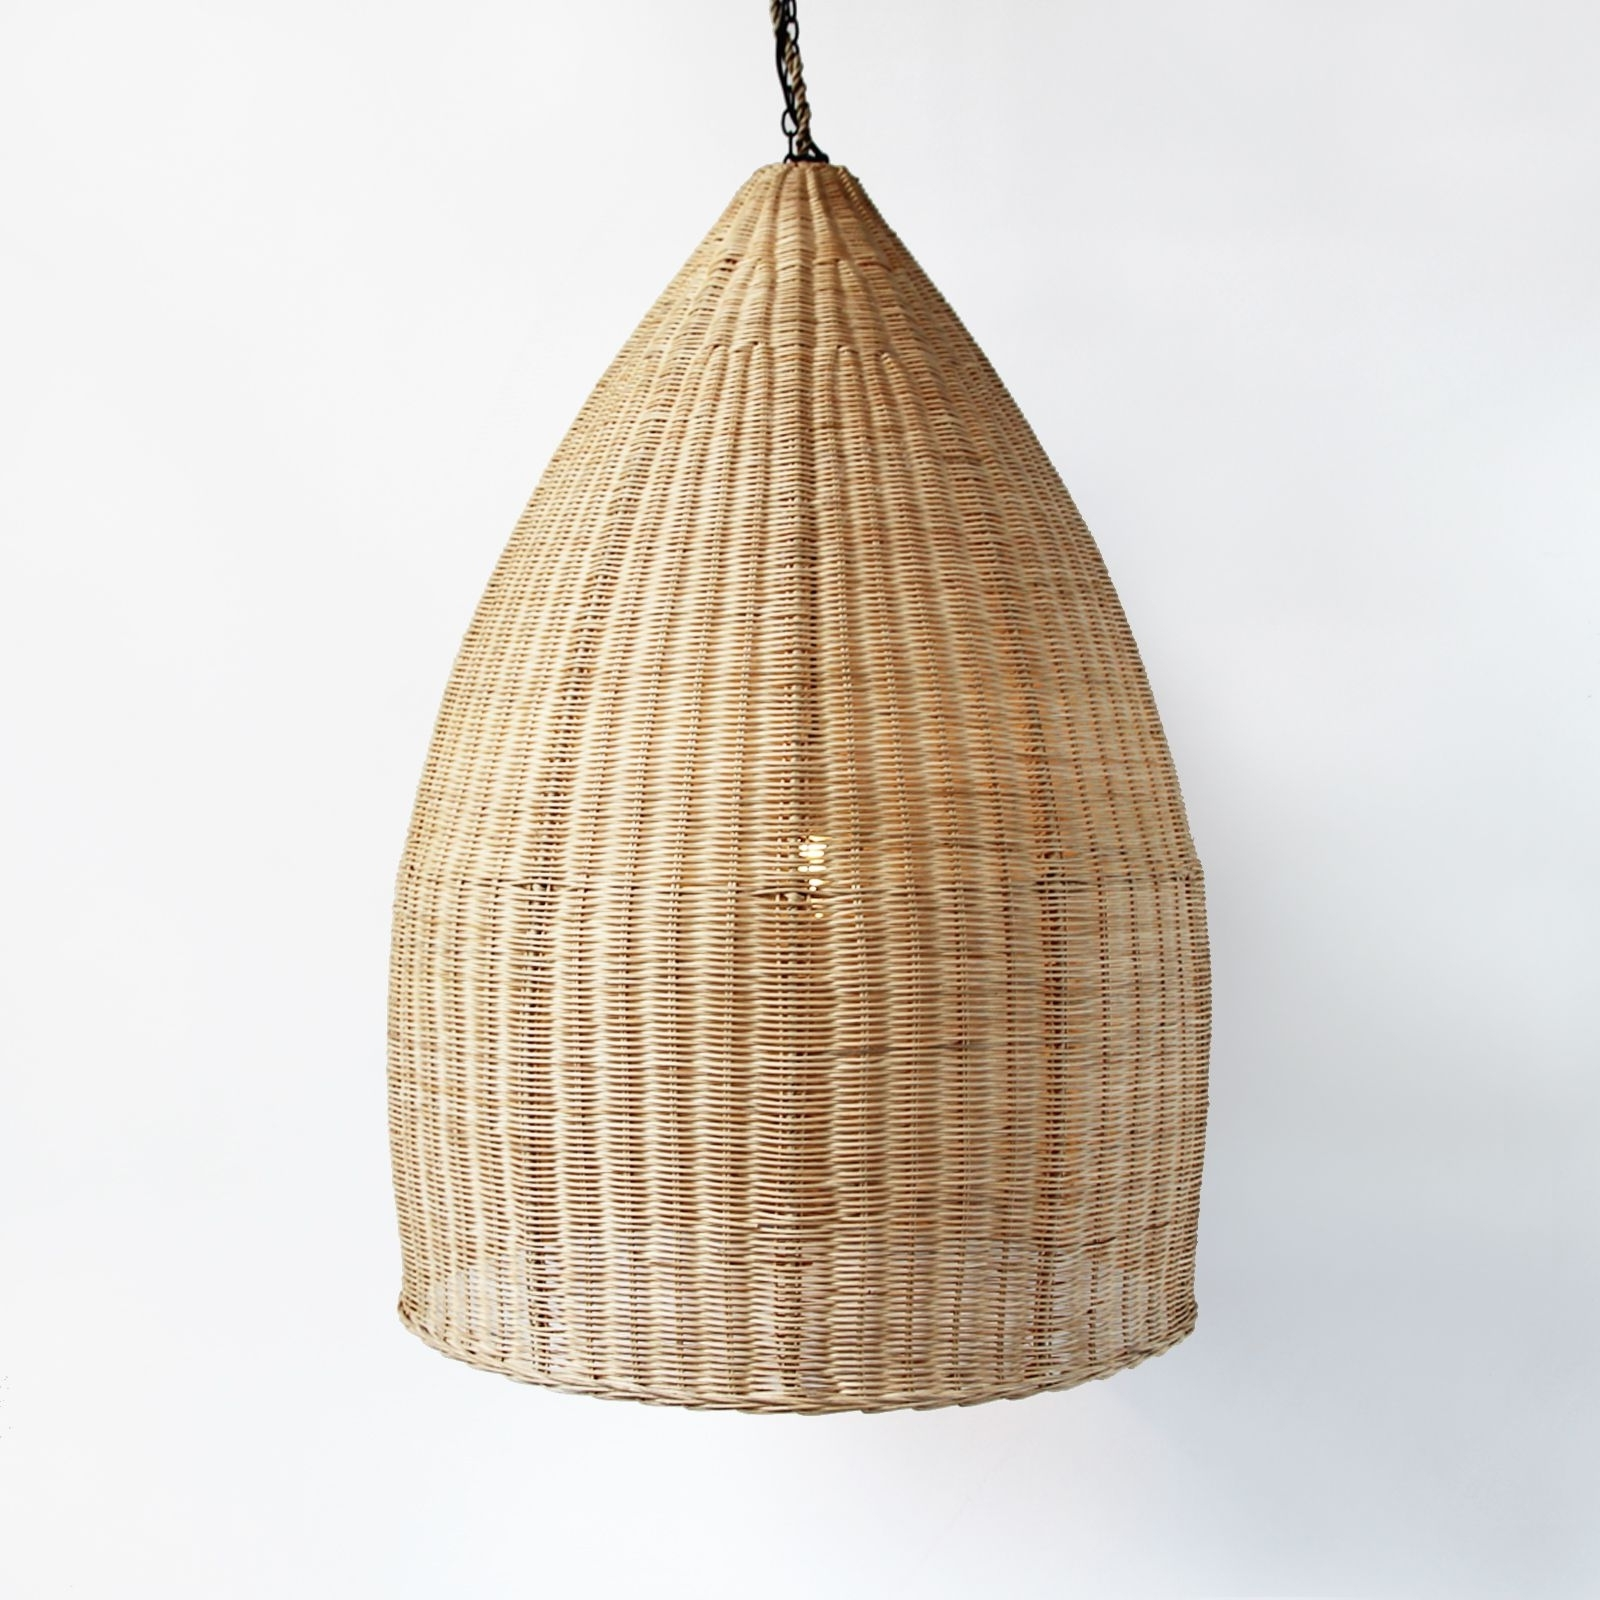 2018 Large Hand Woven Pod Lantern In Natural Raw Rattan. Home Decor. Boho Regarding Outdoor Rattan Lanterns (Gallery 14 of 20)